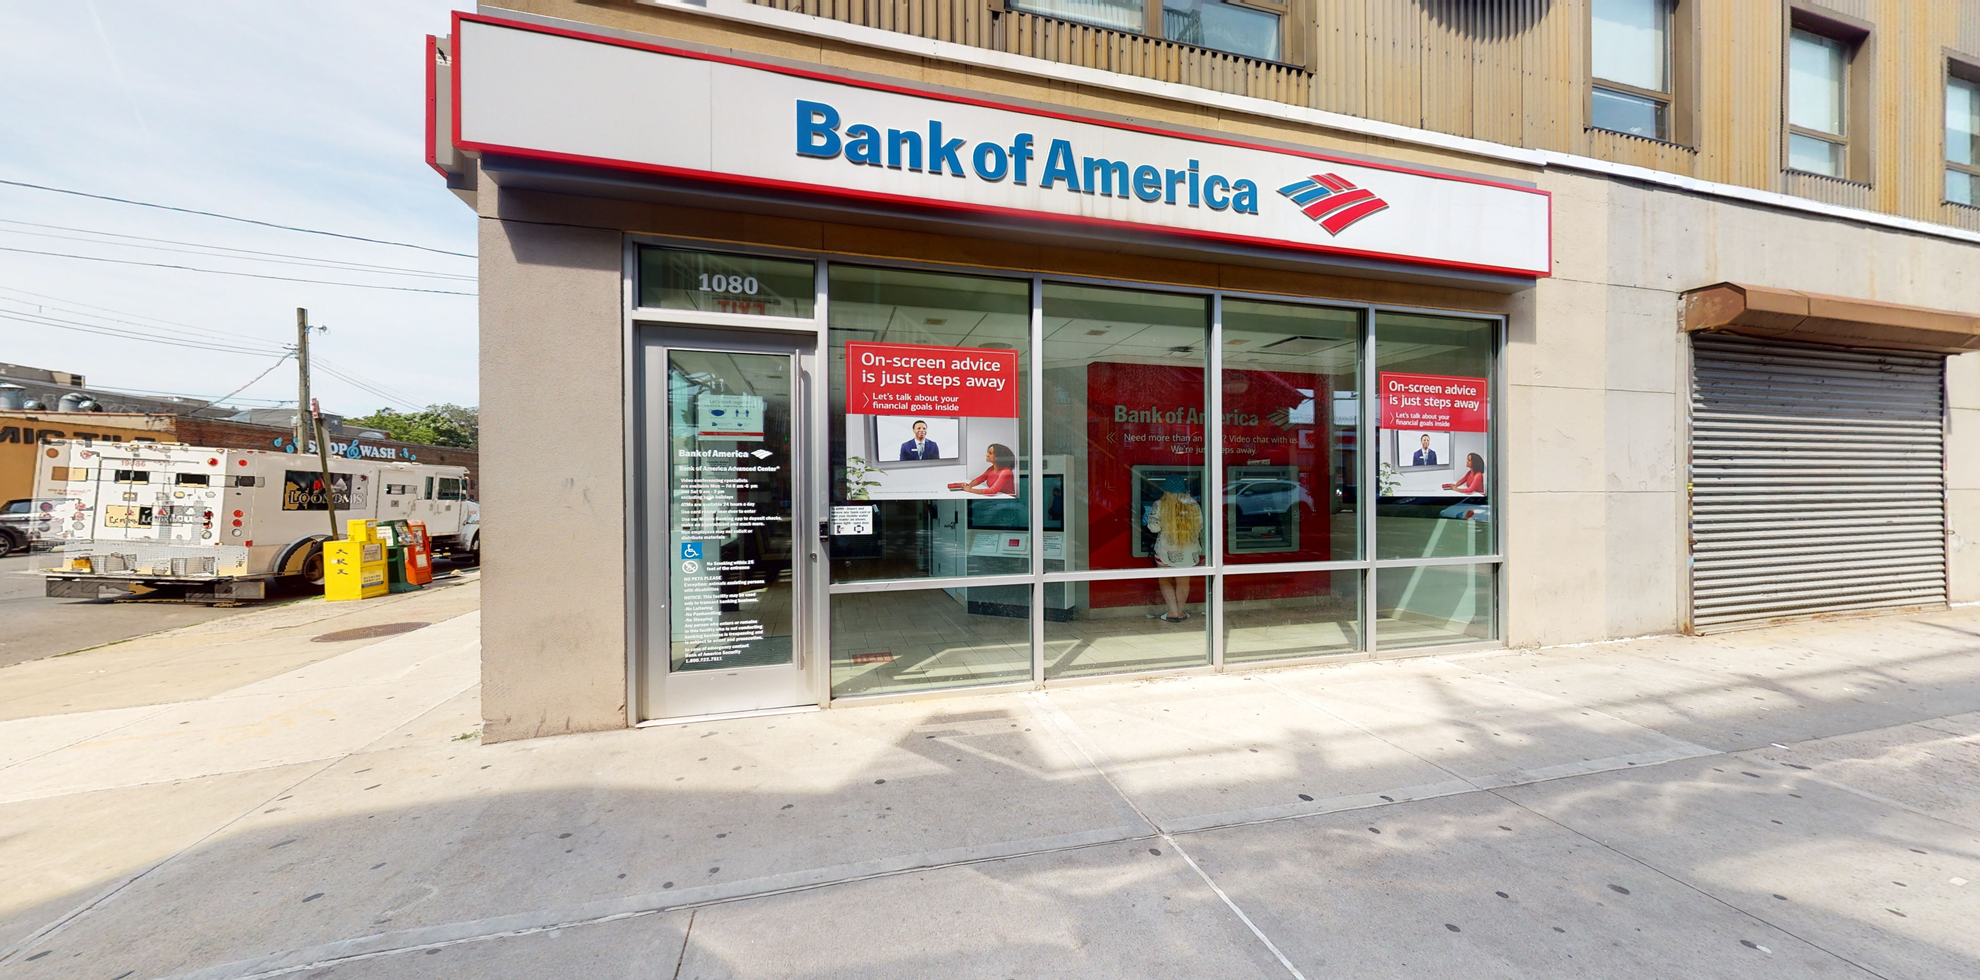 Bank of America Advanced Center with walk-up ATM | 1080 McDonald Ave, Brooklyn, NY 11230